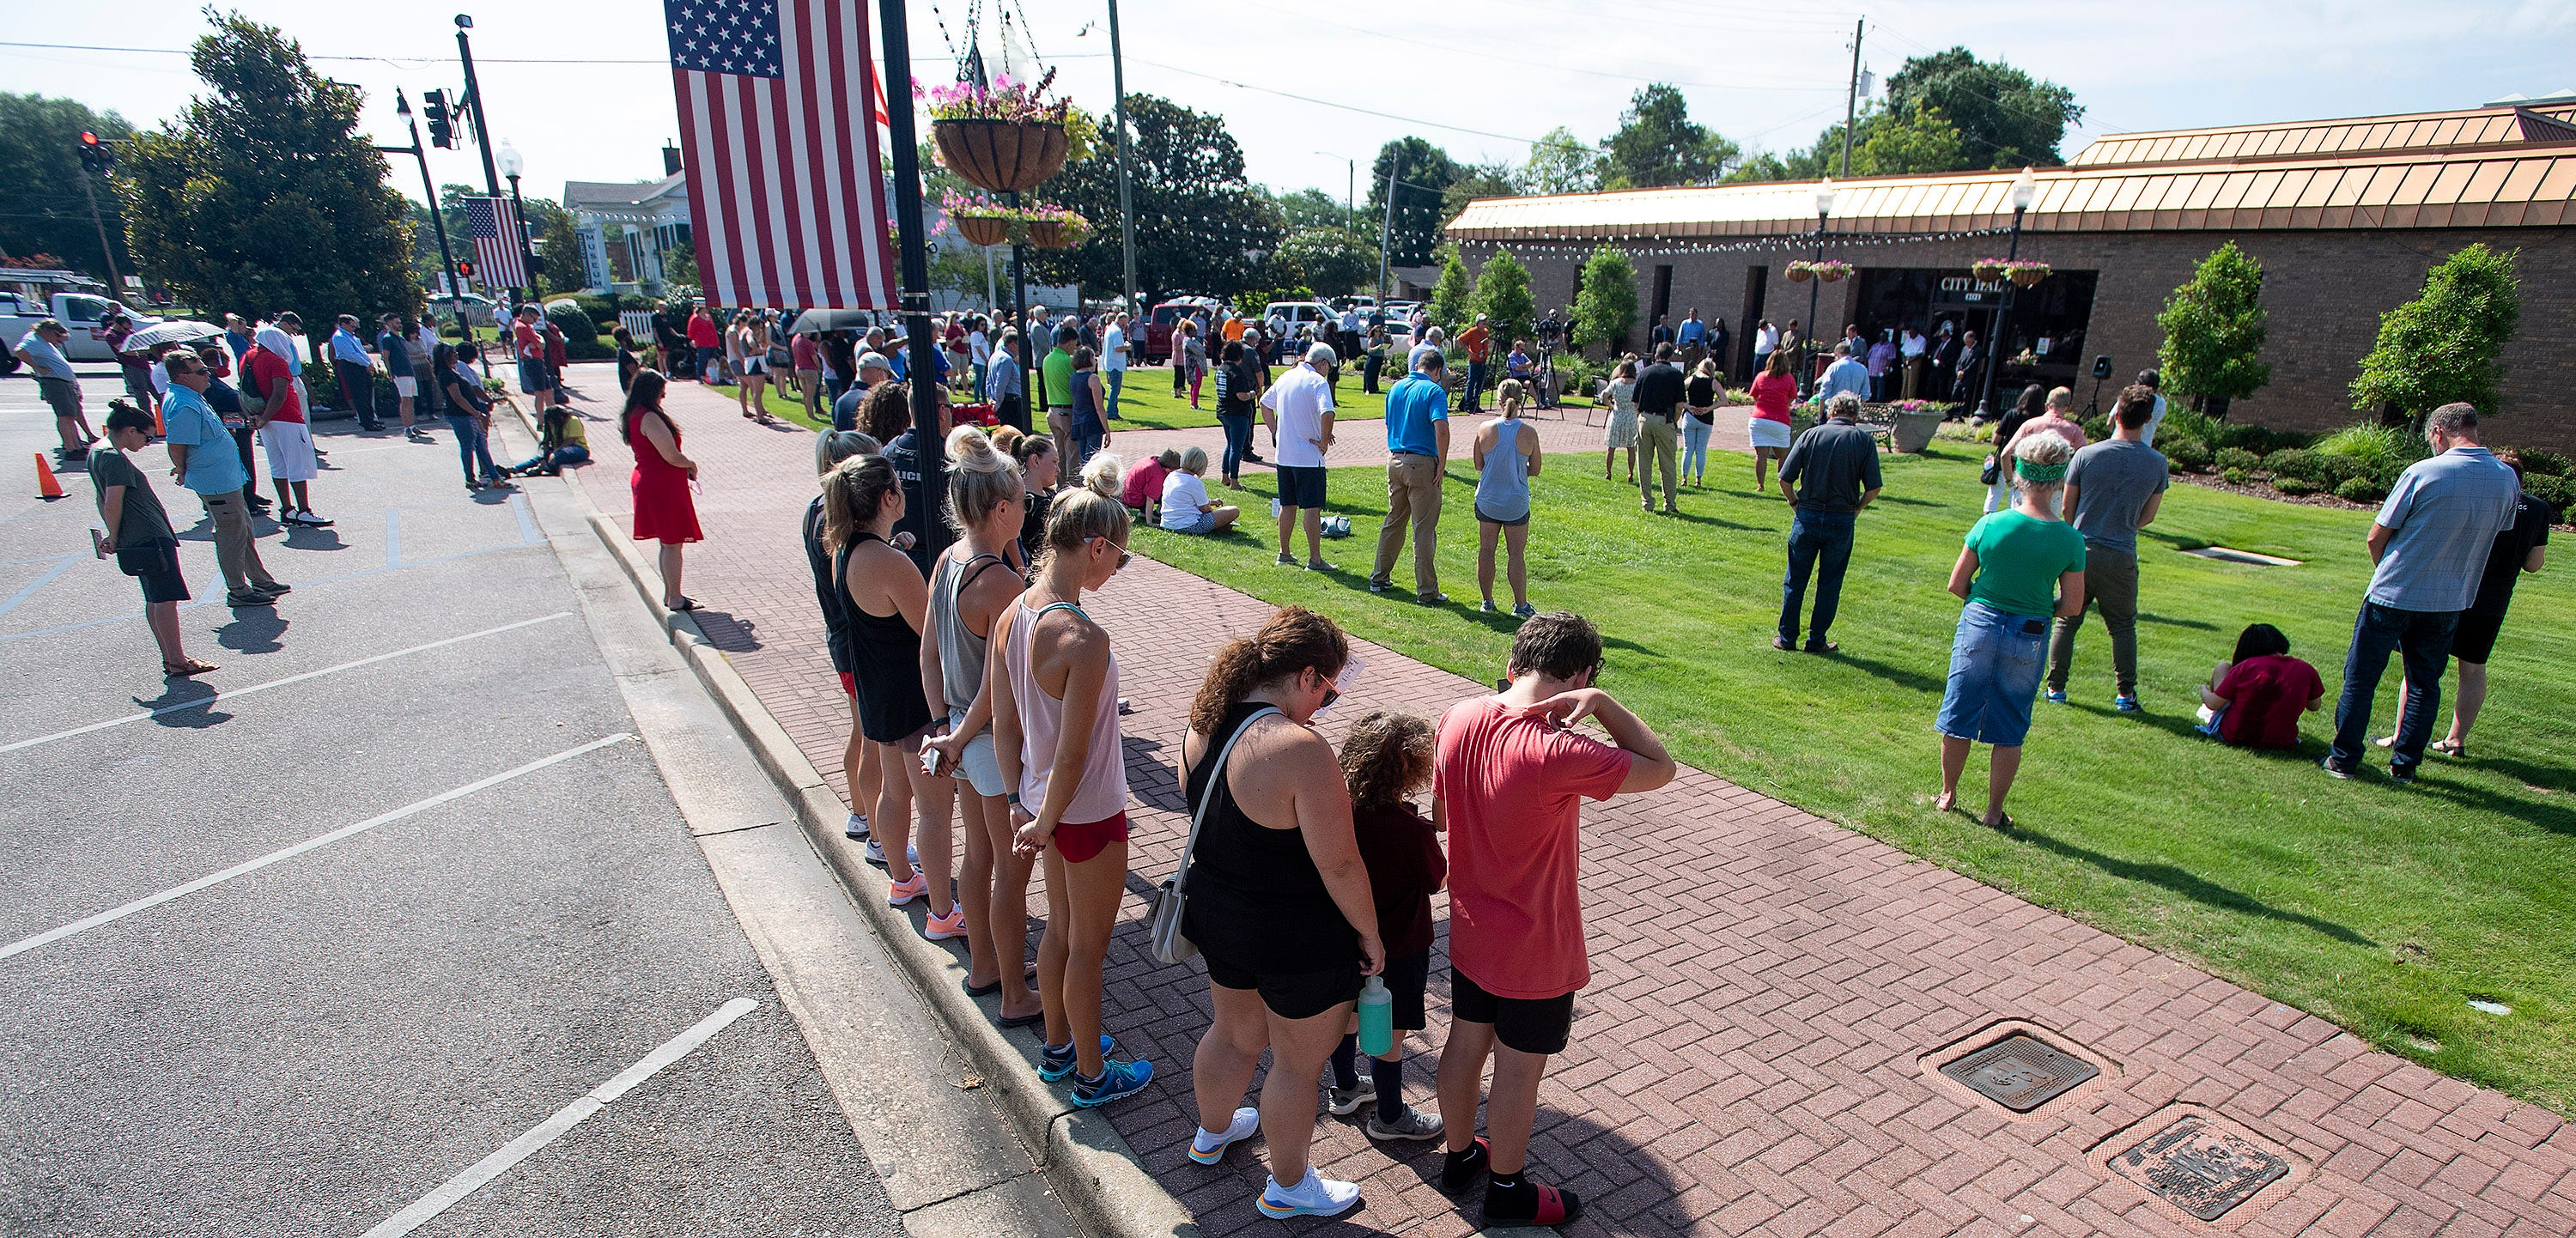 About 200 people gather byCity Hall in Prattville, Ala., on June 5, 2020, as pastors from nine local churches and others offered prayed for peace and justice.